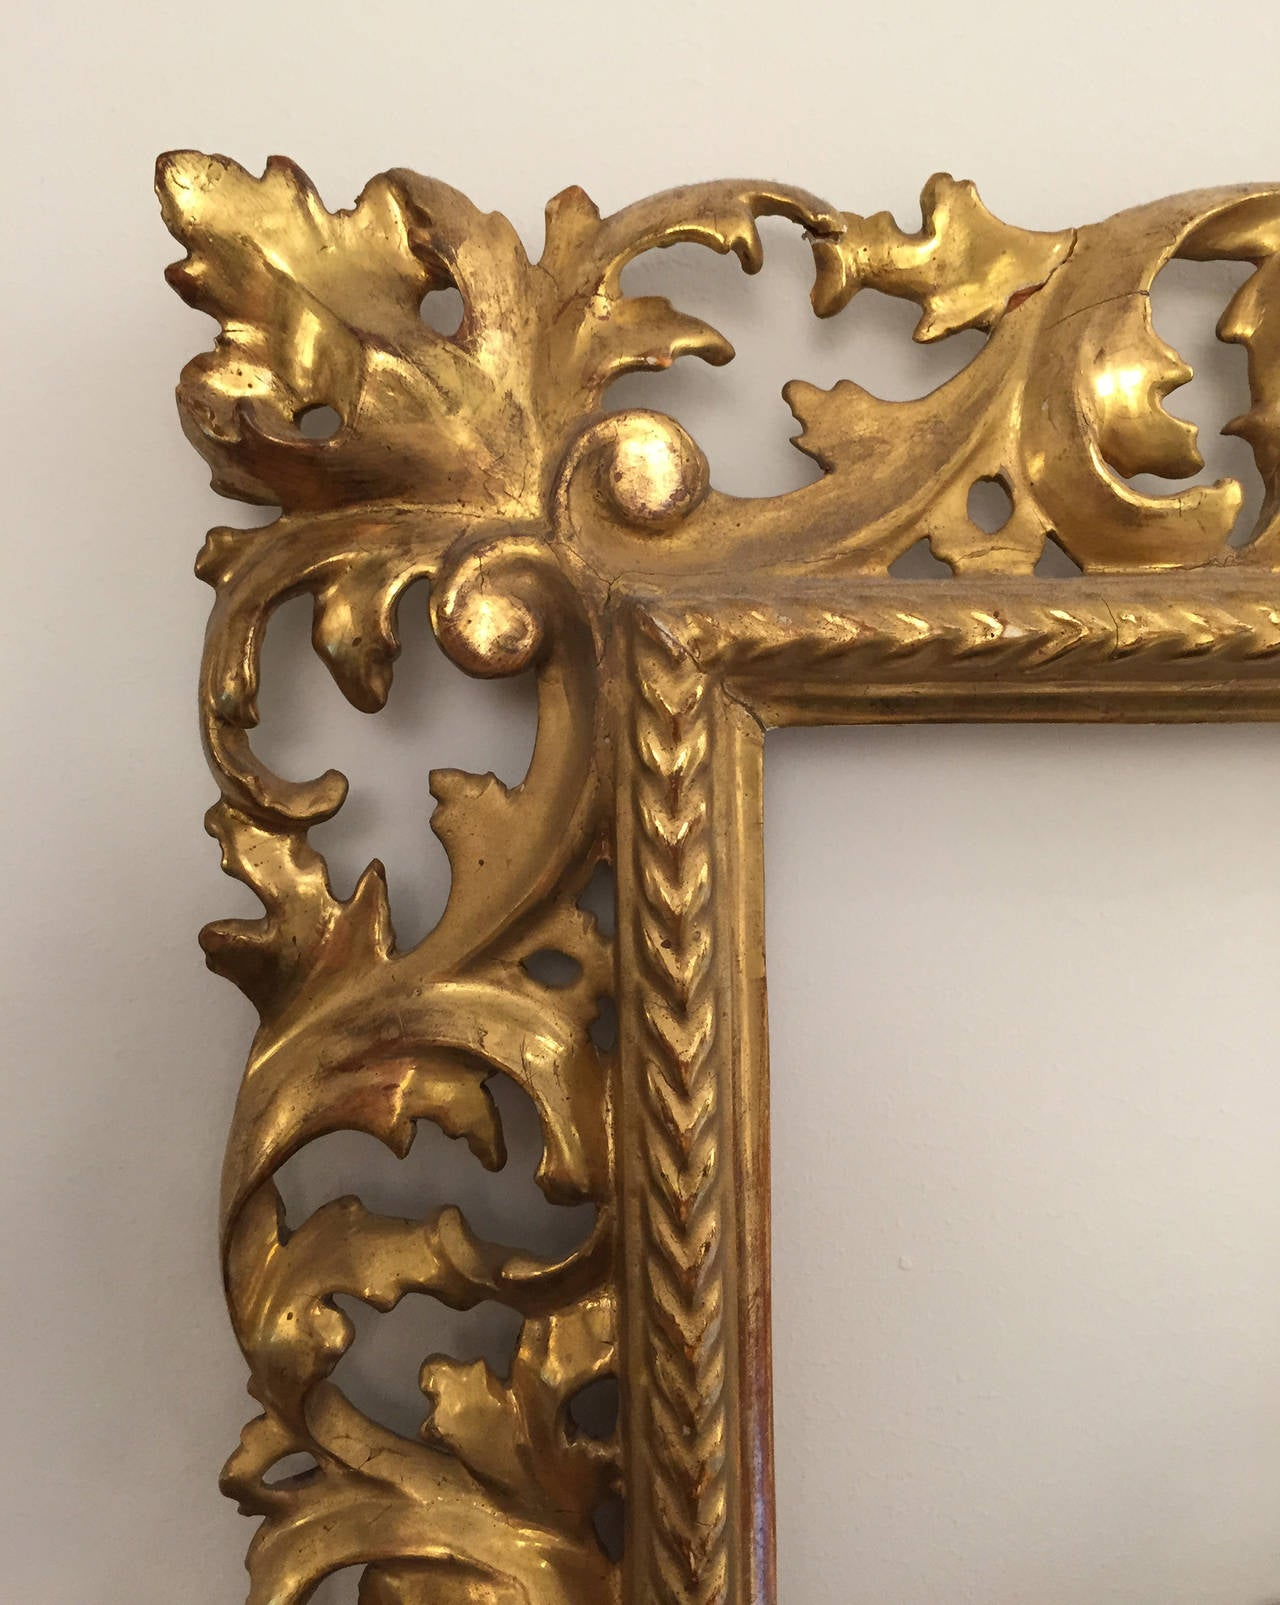 19th century italian carved frame for sale at 1stdibs finely carved and gilded 19th century italian frame features continuous pierced carving decorative design jeuxipadfo Image collections